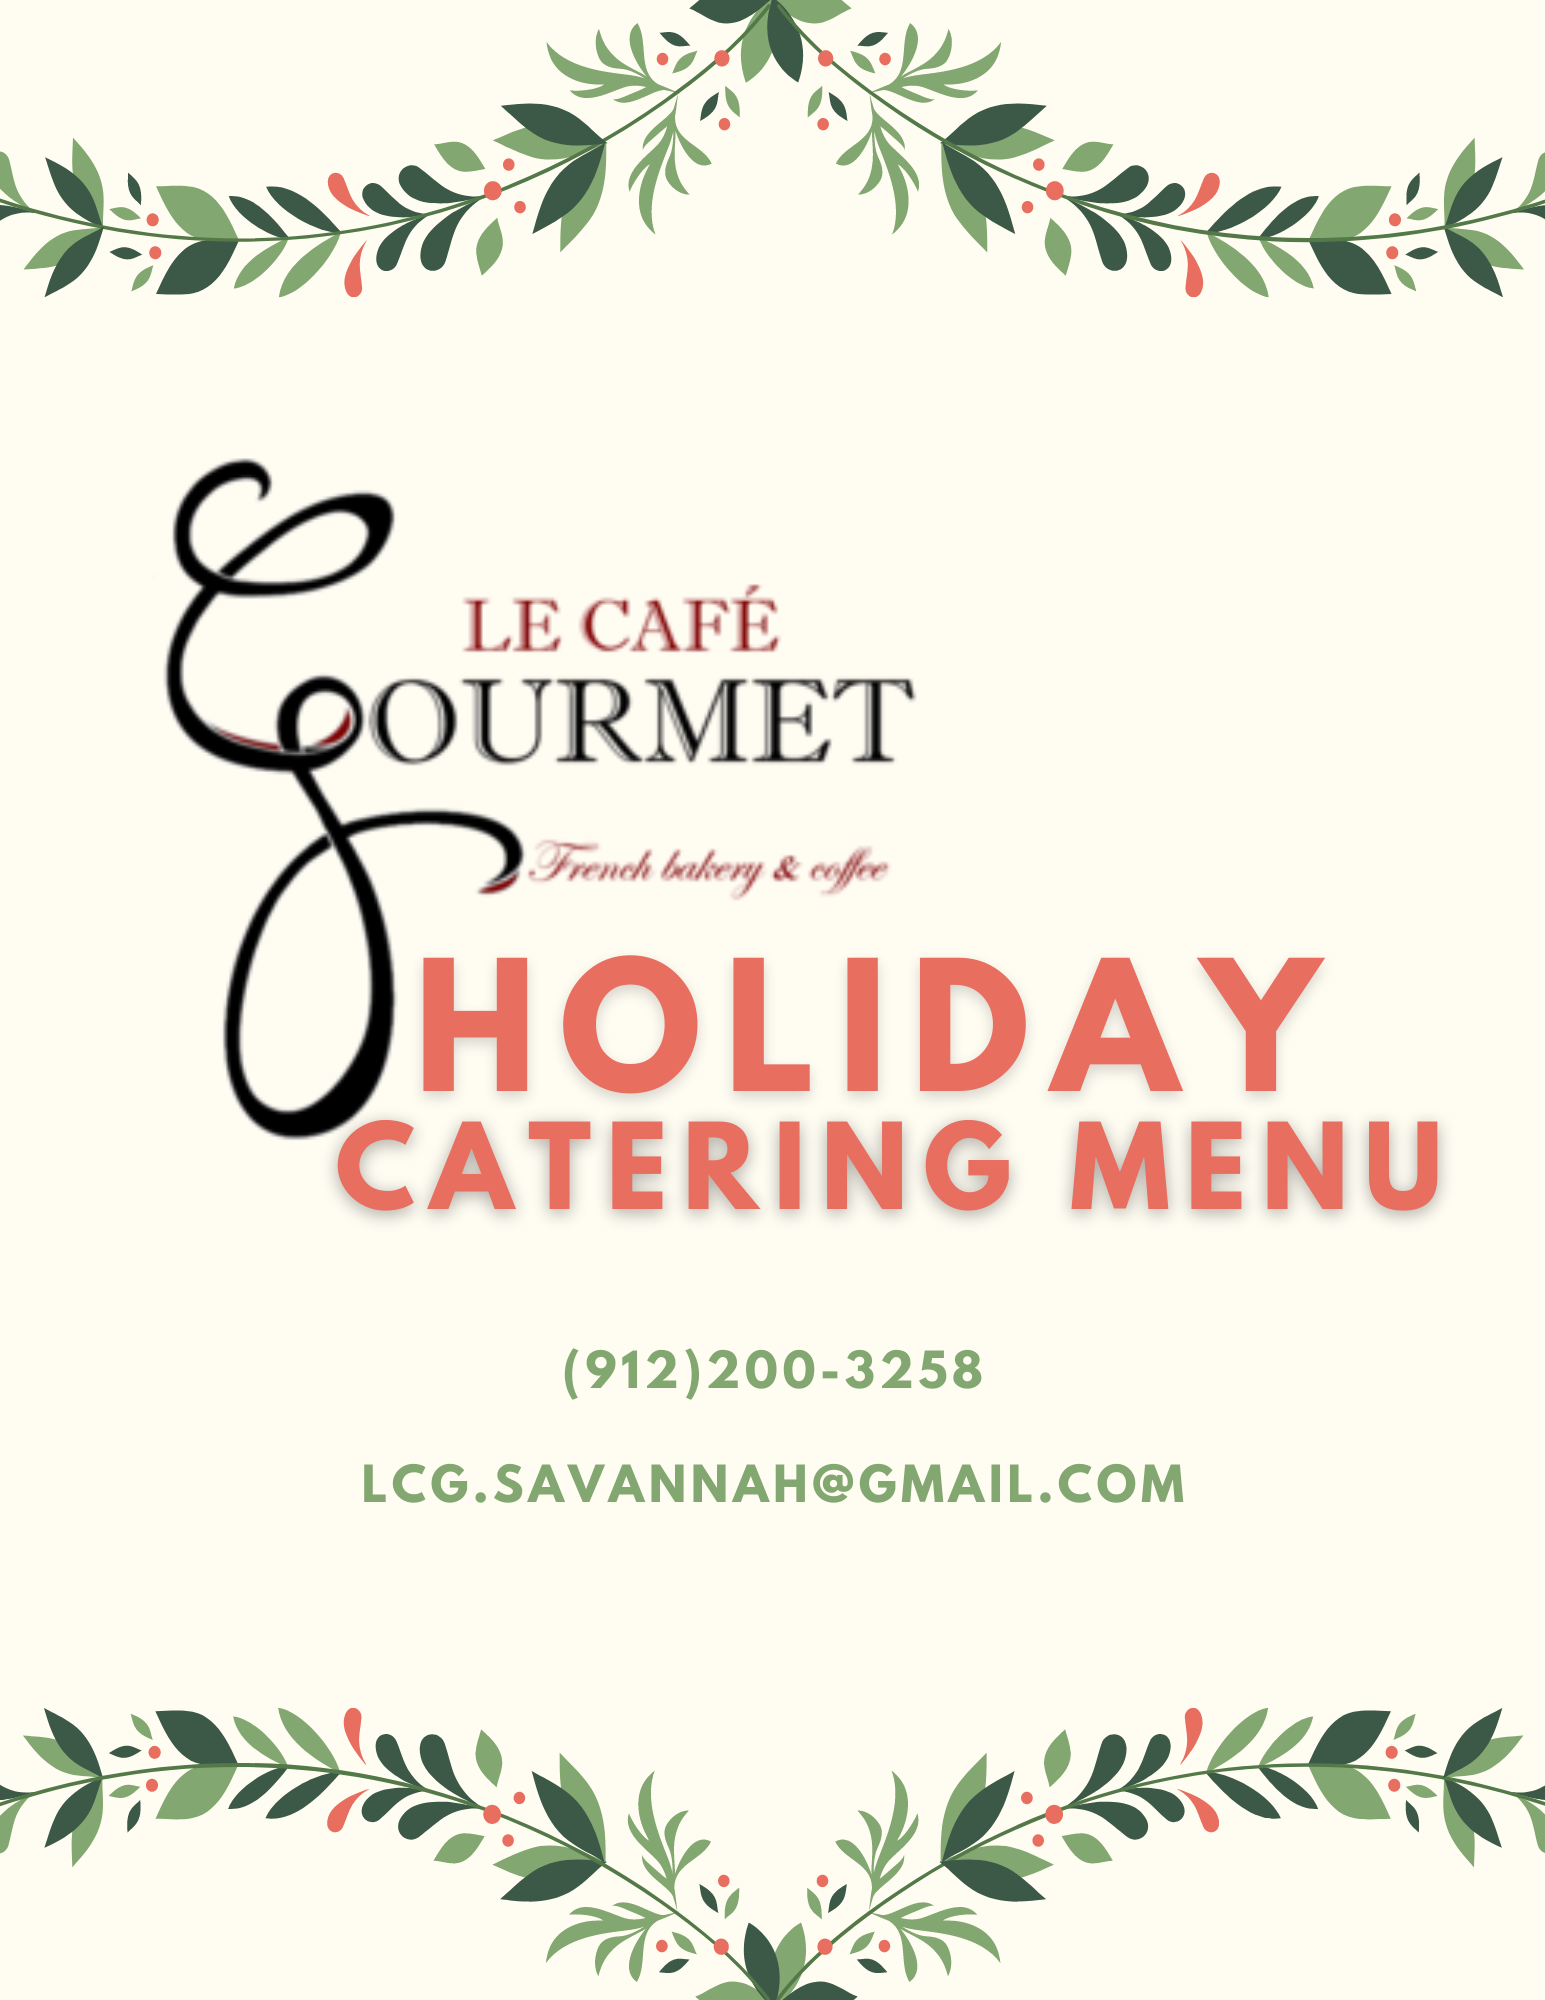 Le Café Gourmet Holiday  Menu.png